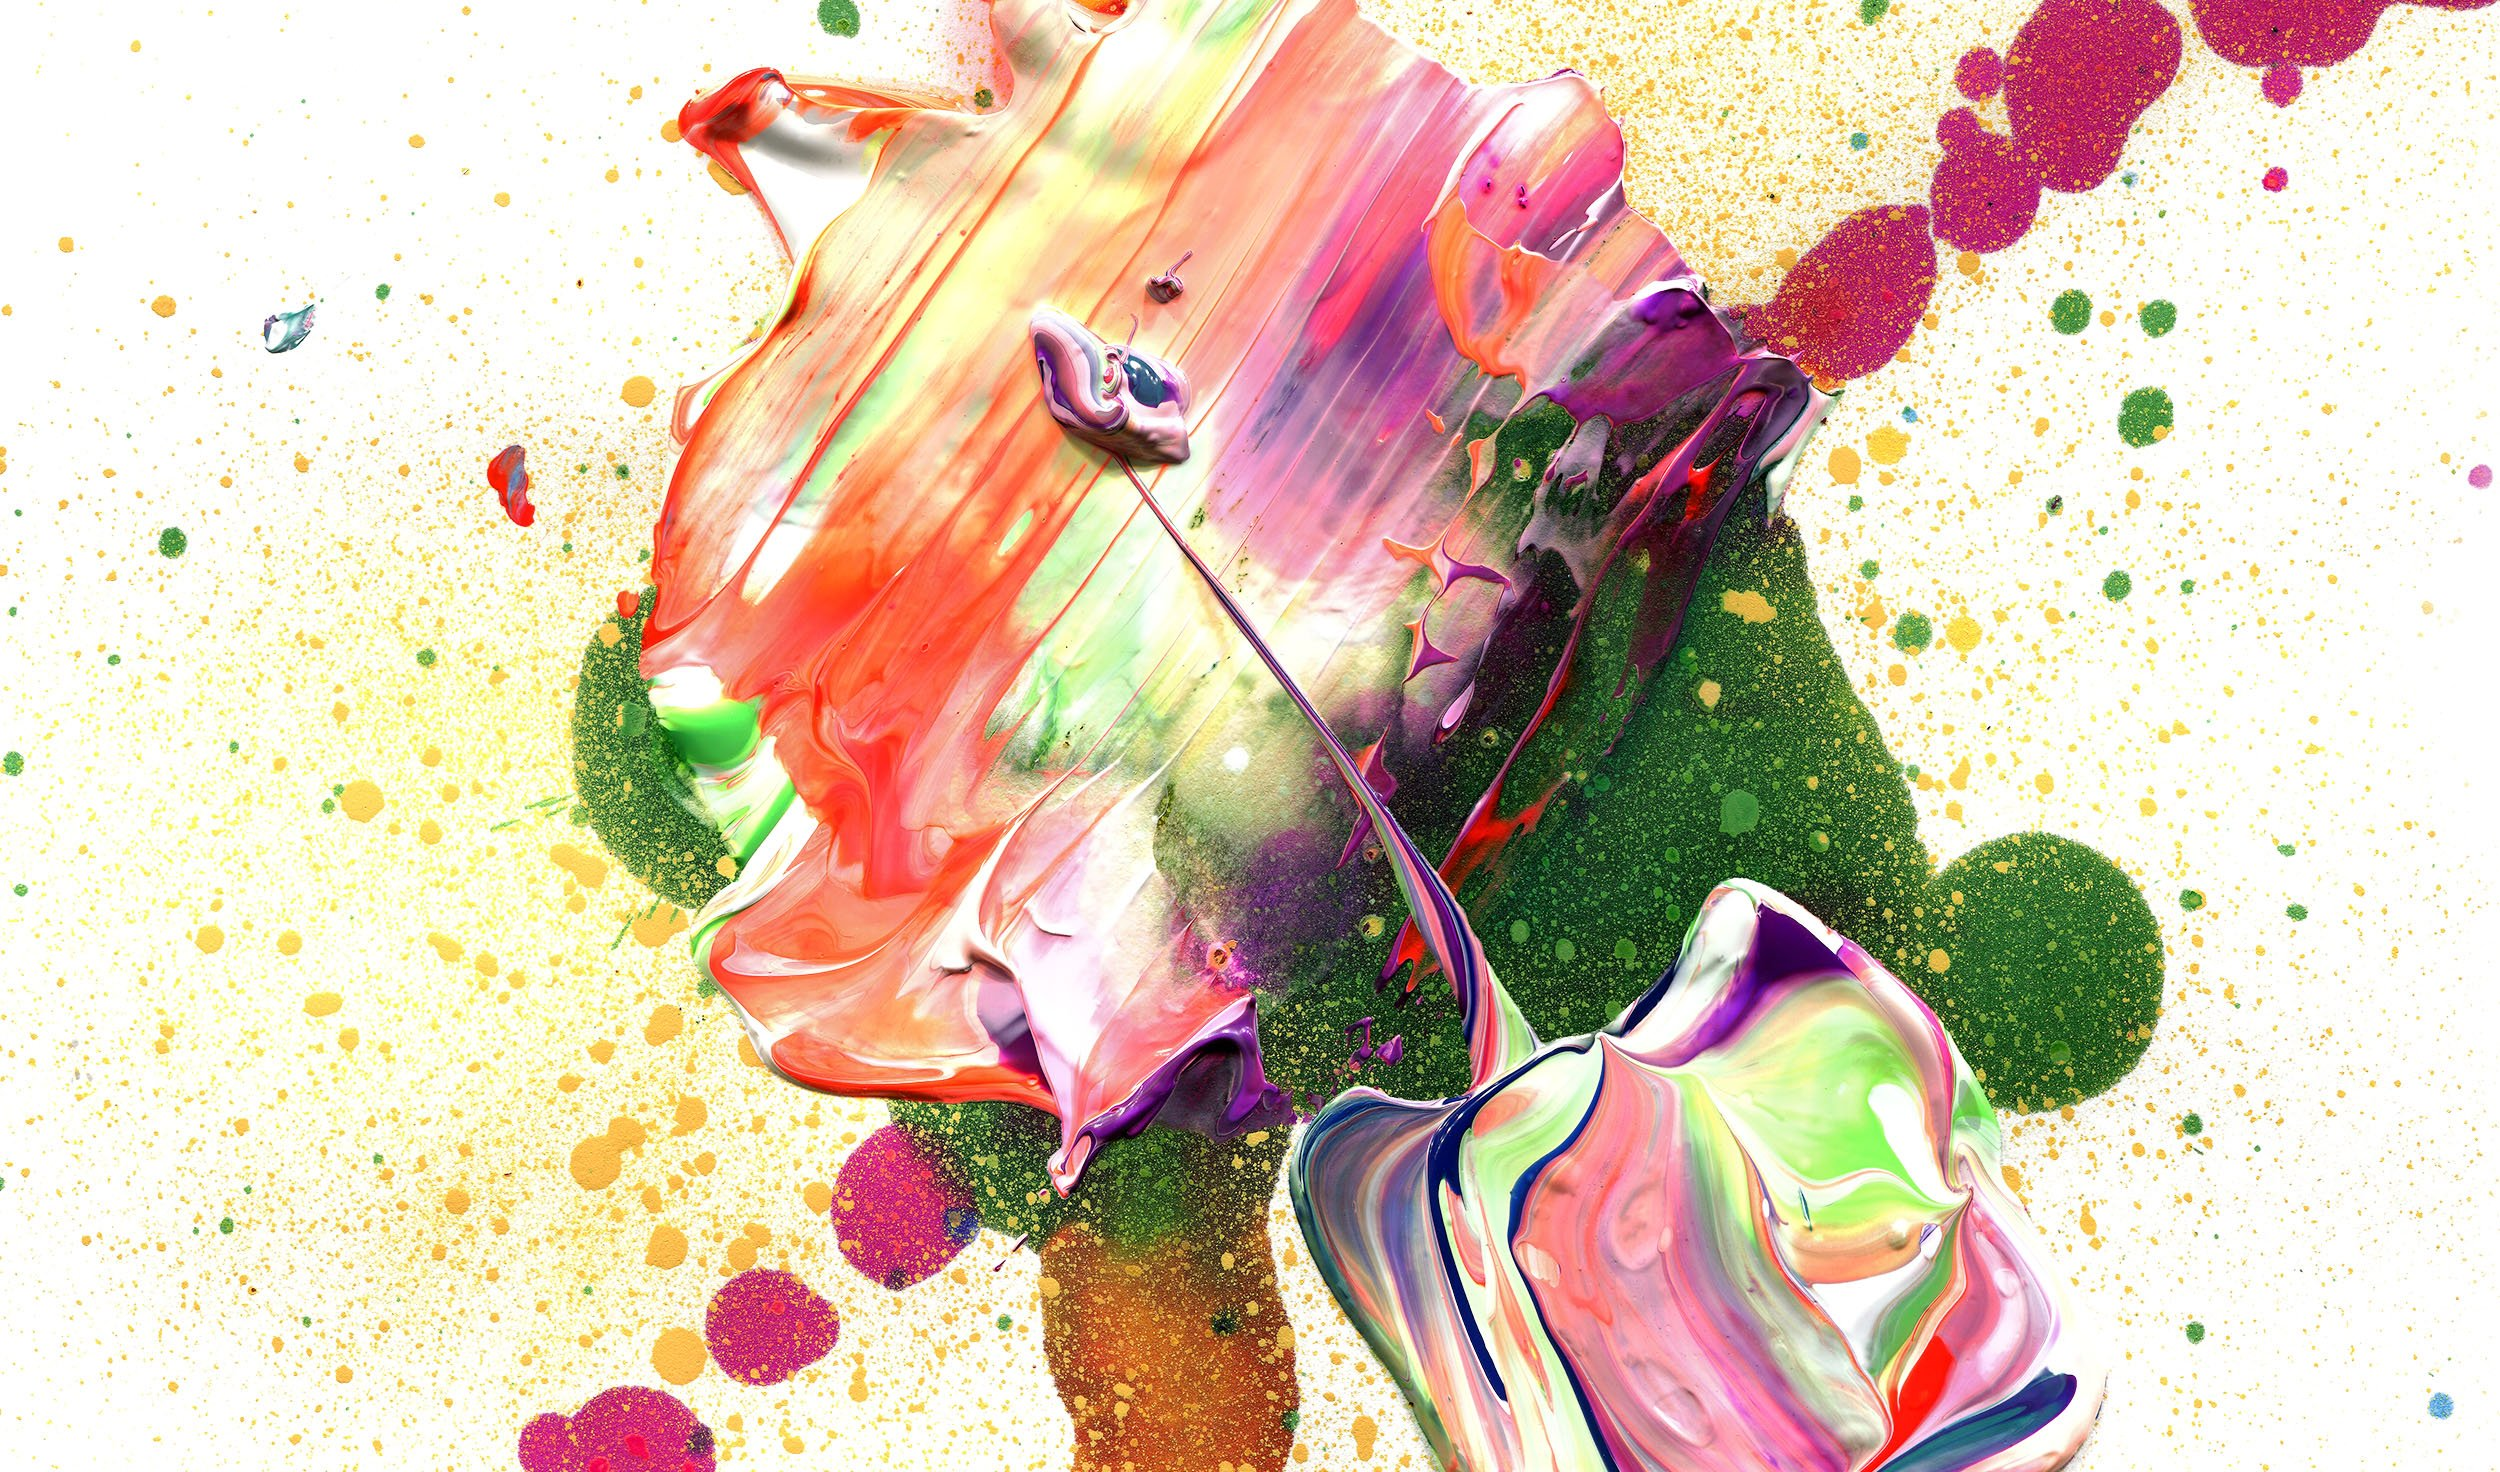 prez slide 12 thick paint textures and ps brushes